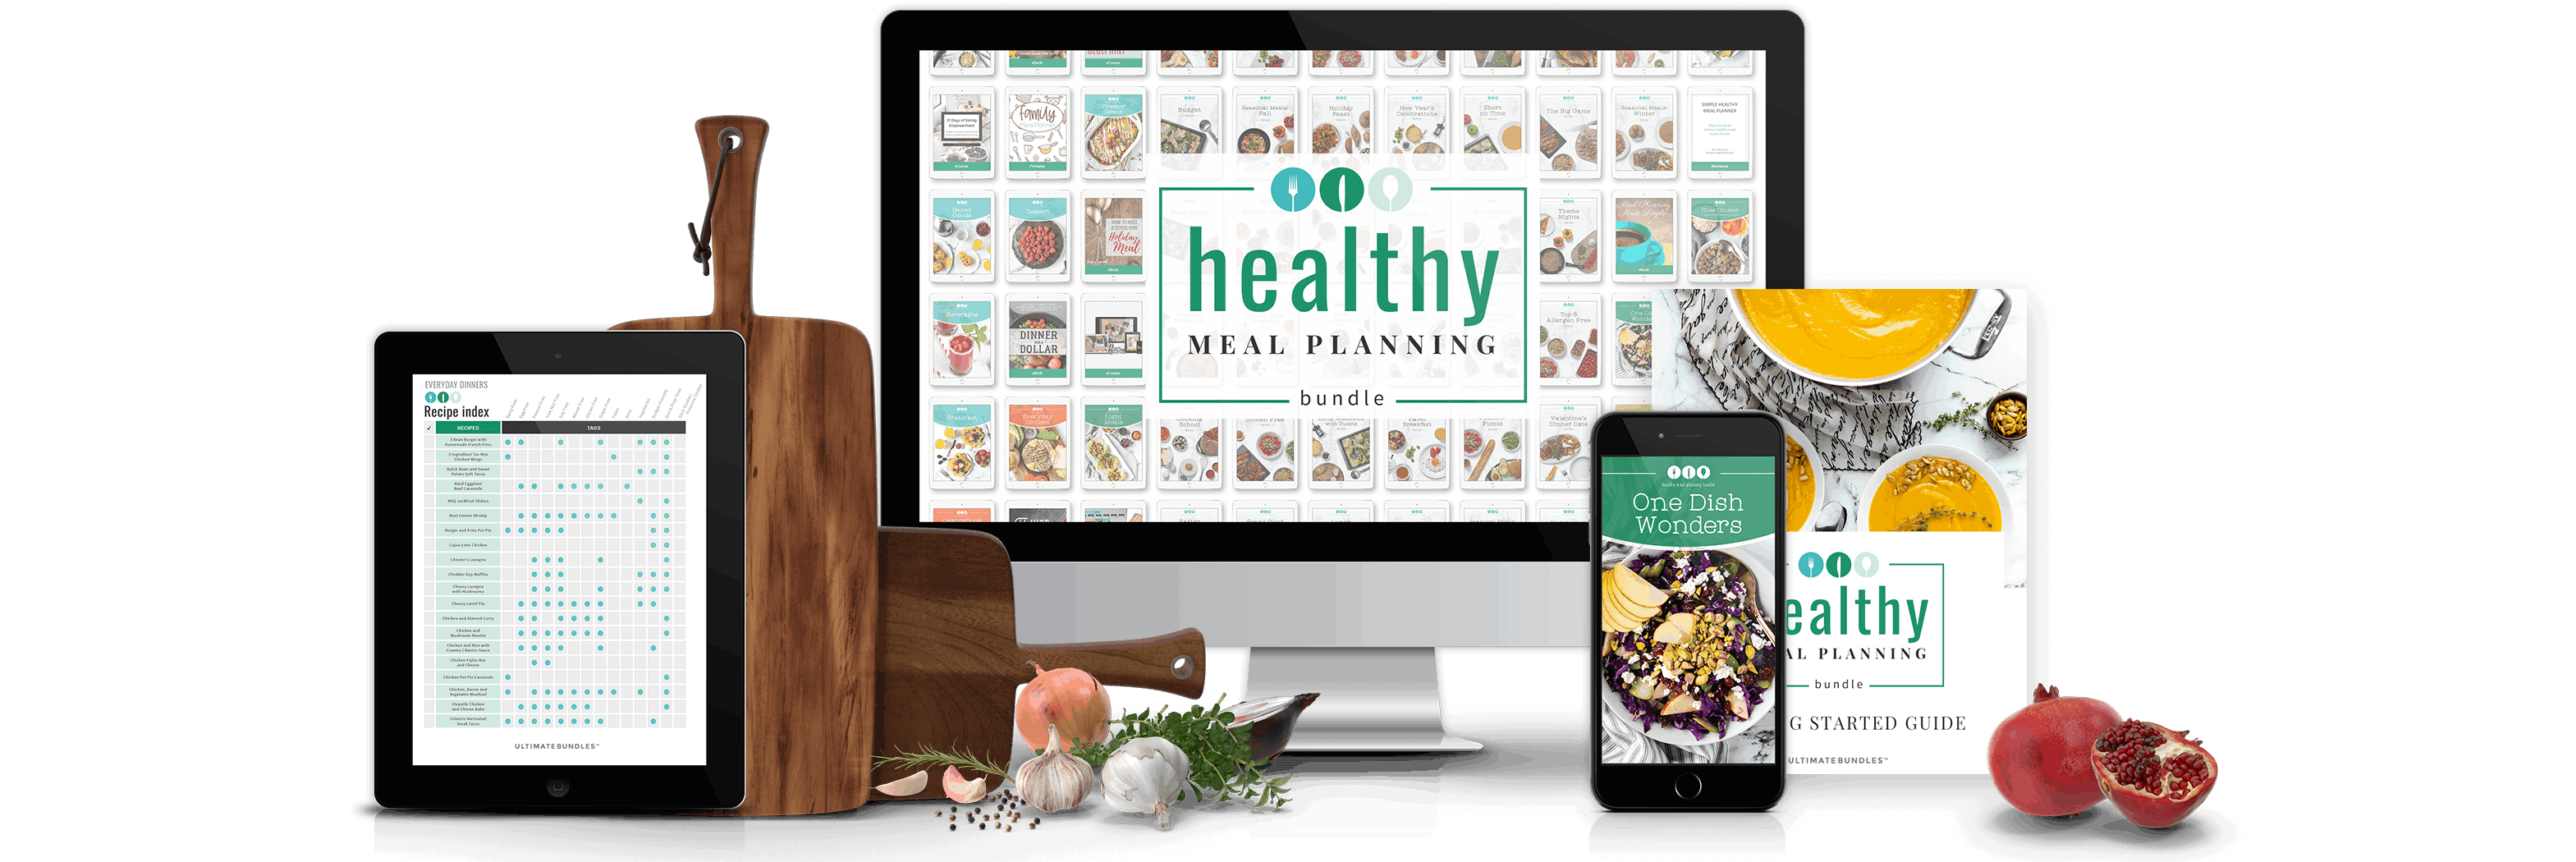 Healthy Meal Planning Ultimate Bundle full bundle photo